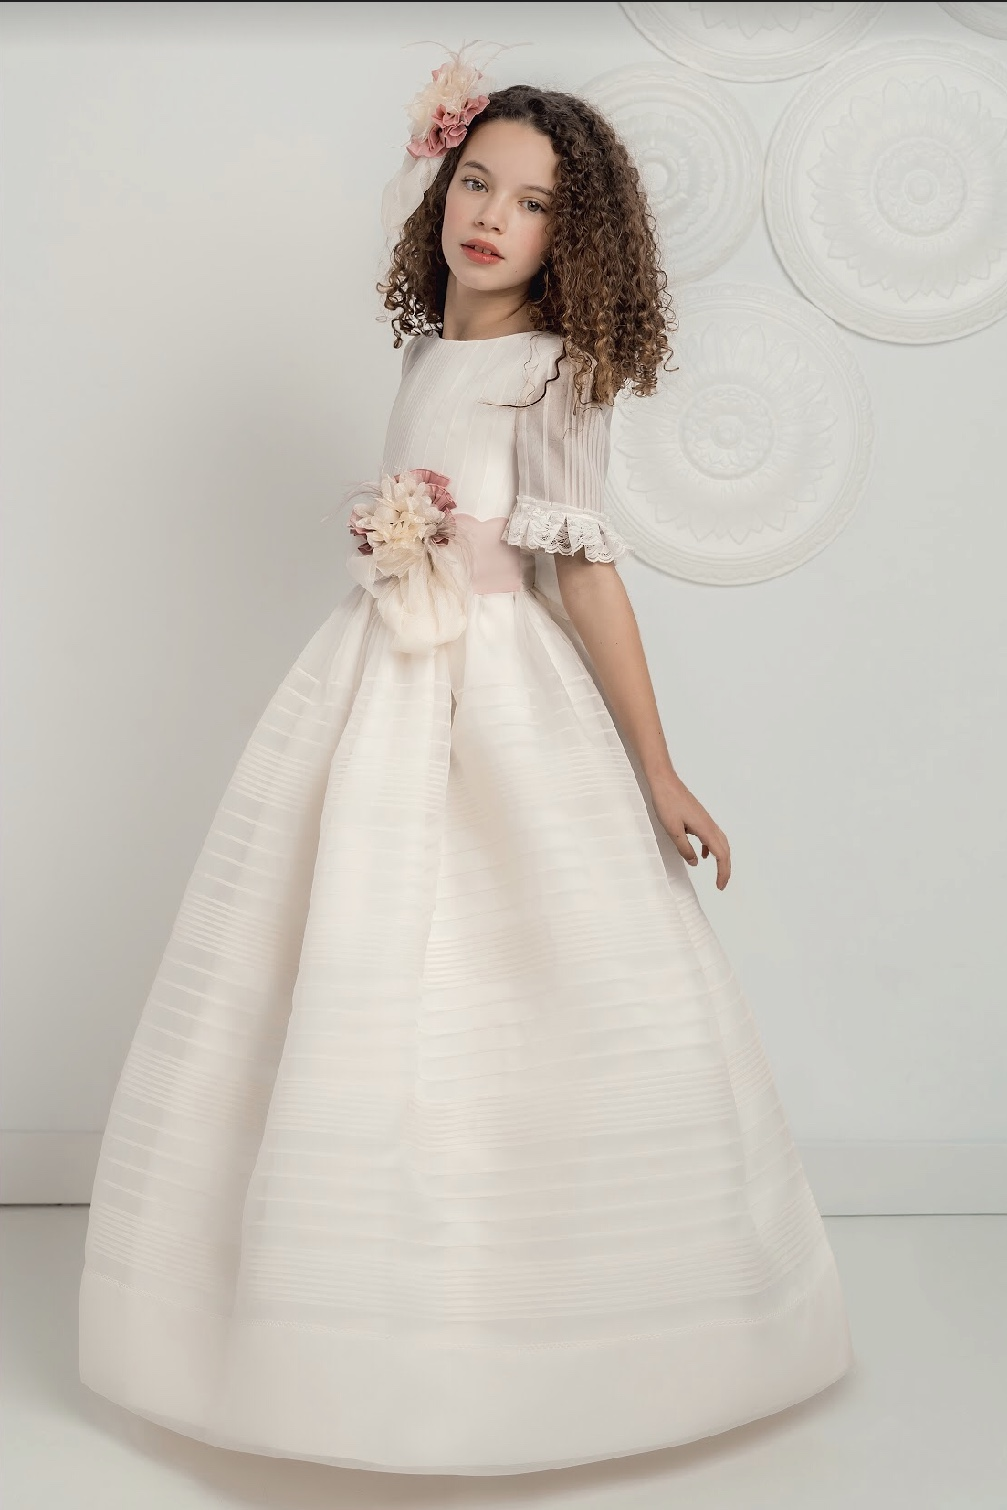 White Organza Communion Dress with delicate tucks and 3/4 sleeves